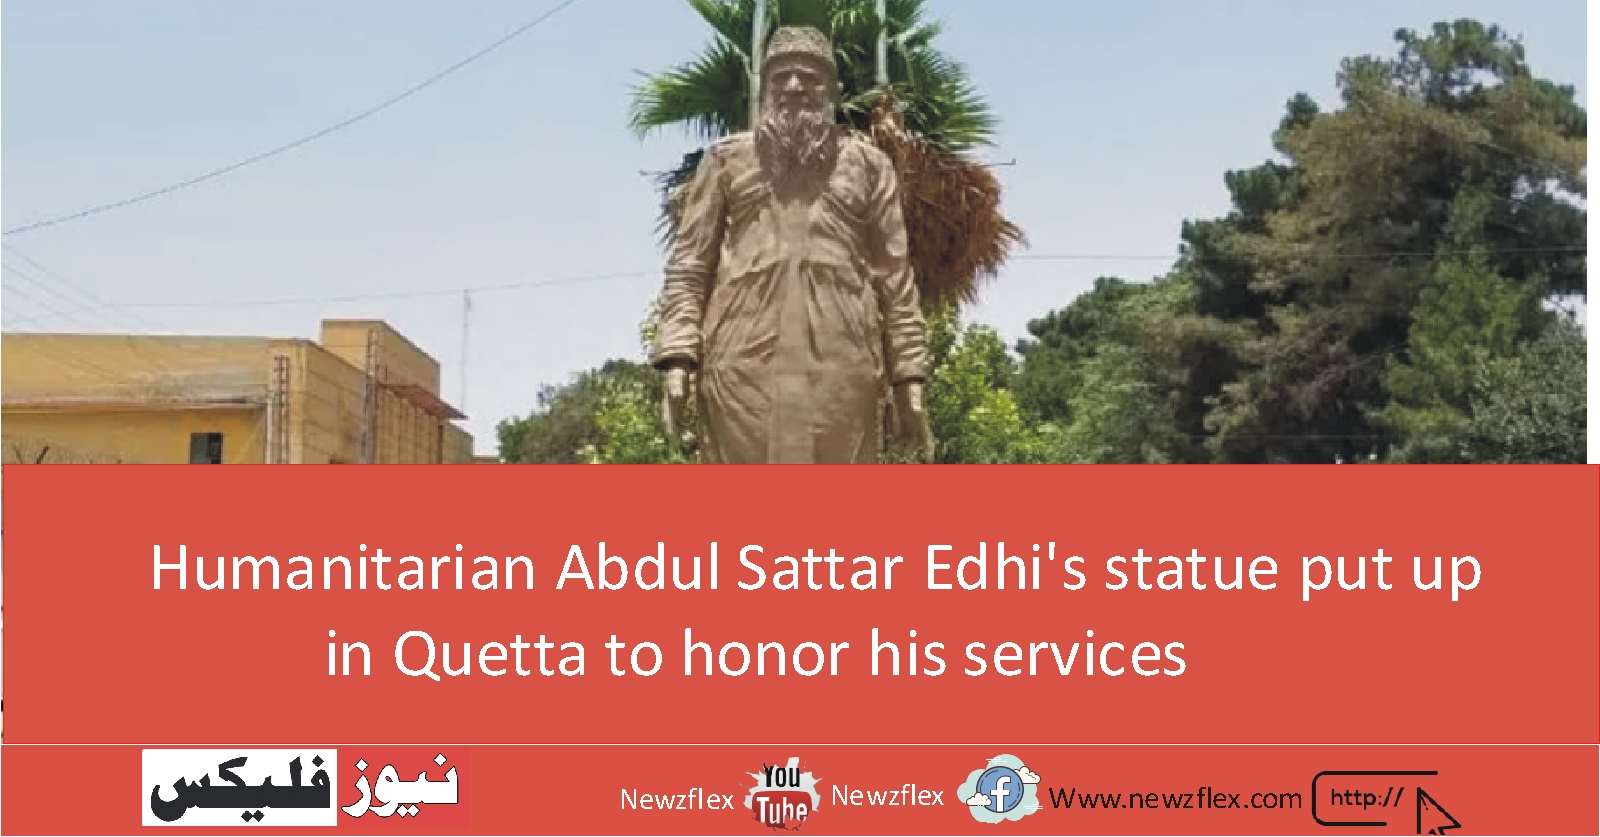 Humanitarian Abdul Sattar Edhi's statue put up in Quetta to honor his services